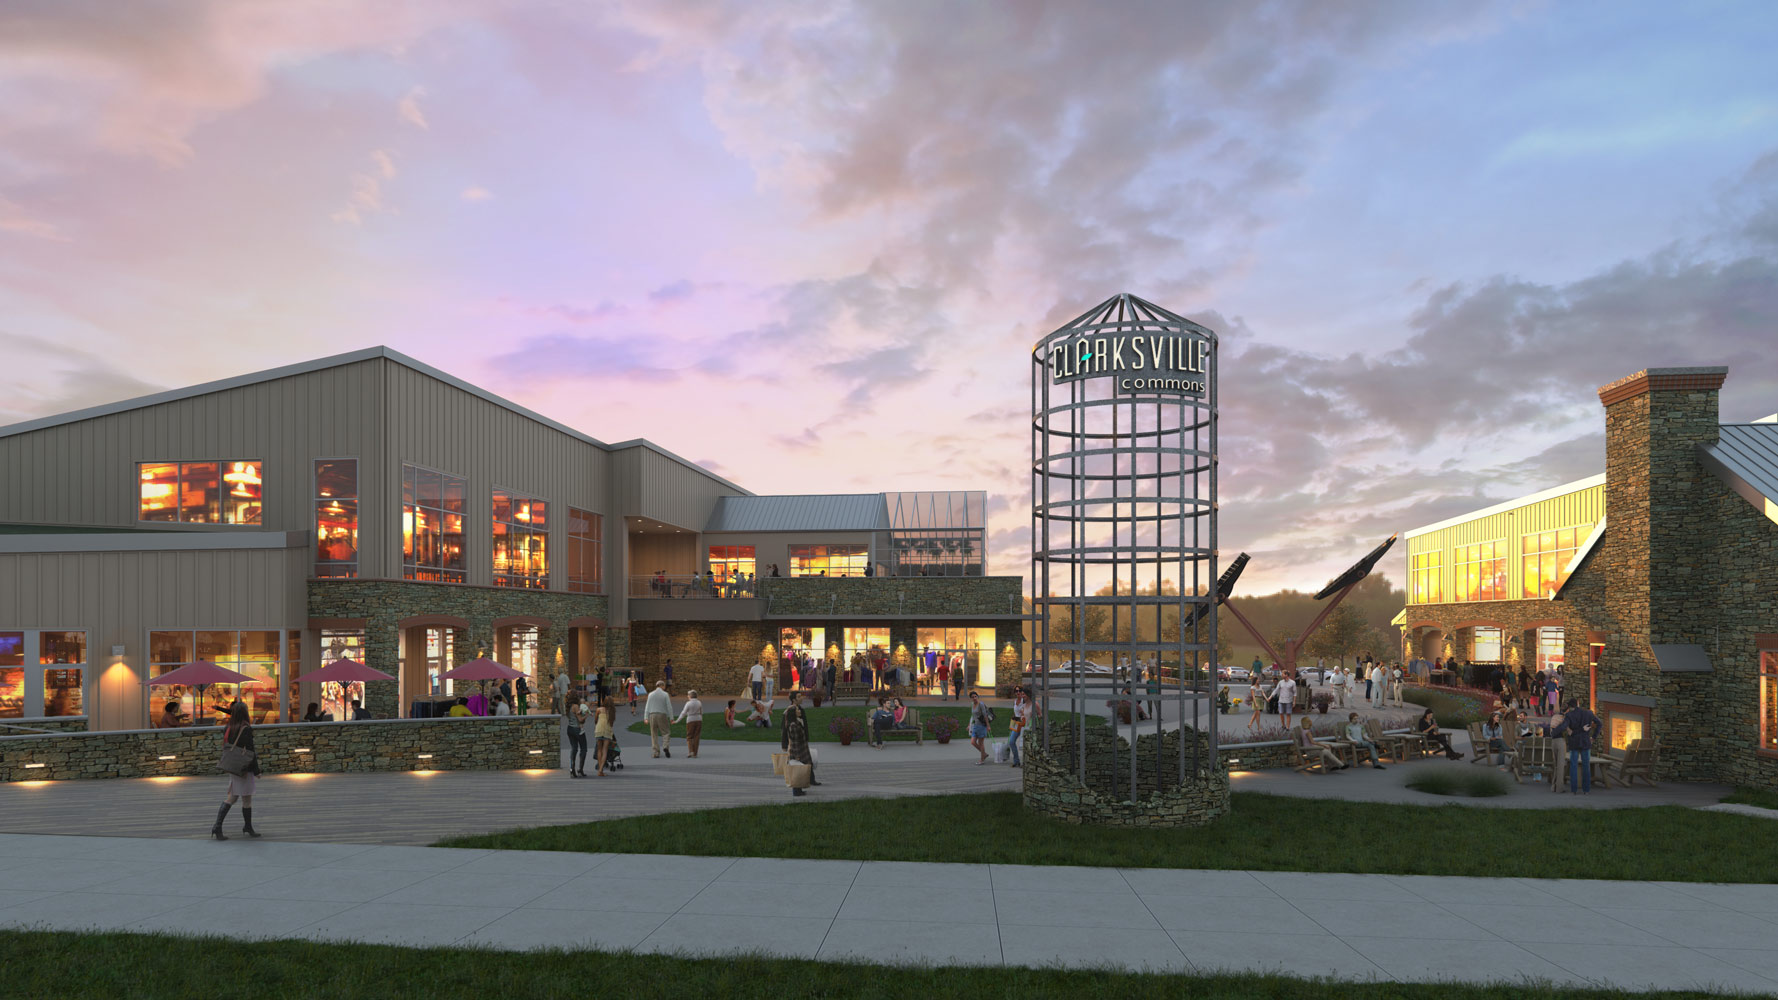 Clarksville Commons Architectural 3d Rendering